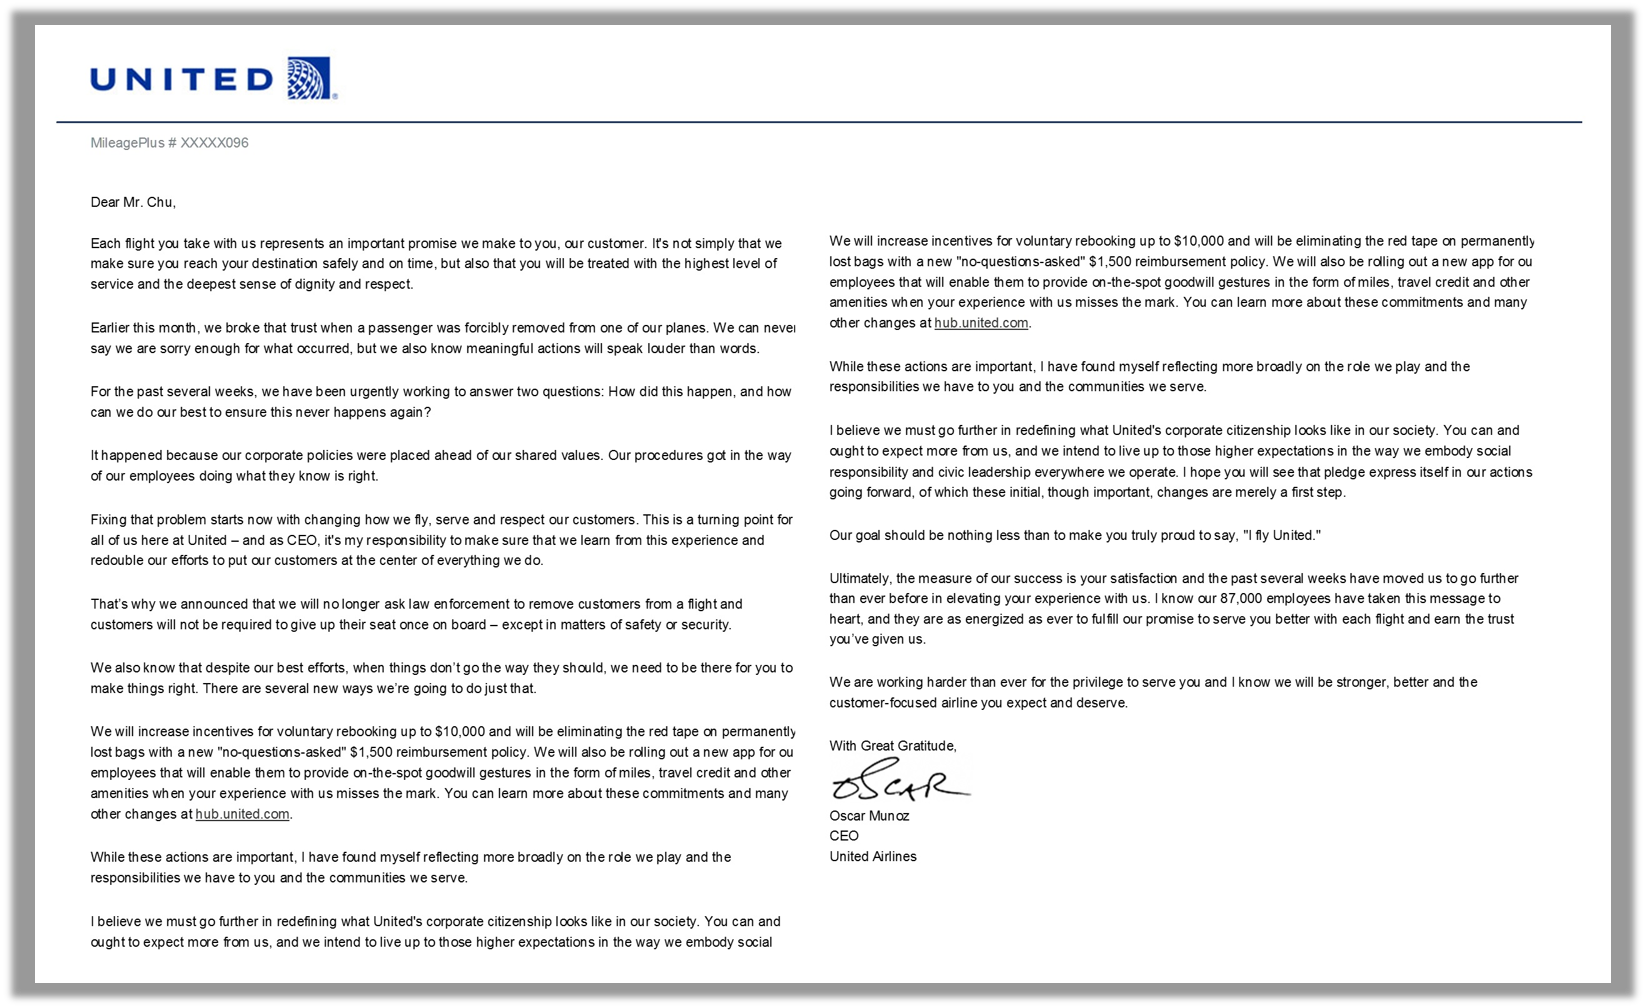 United Airlines Letter.png